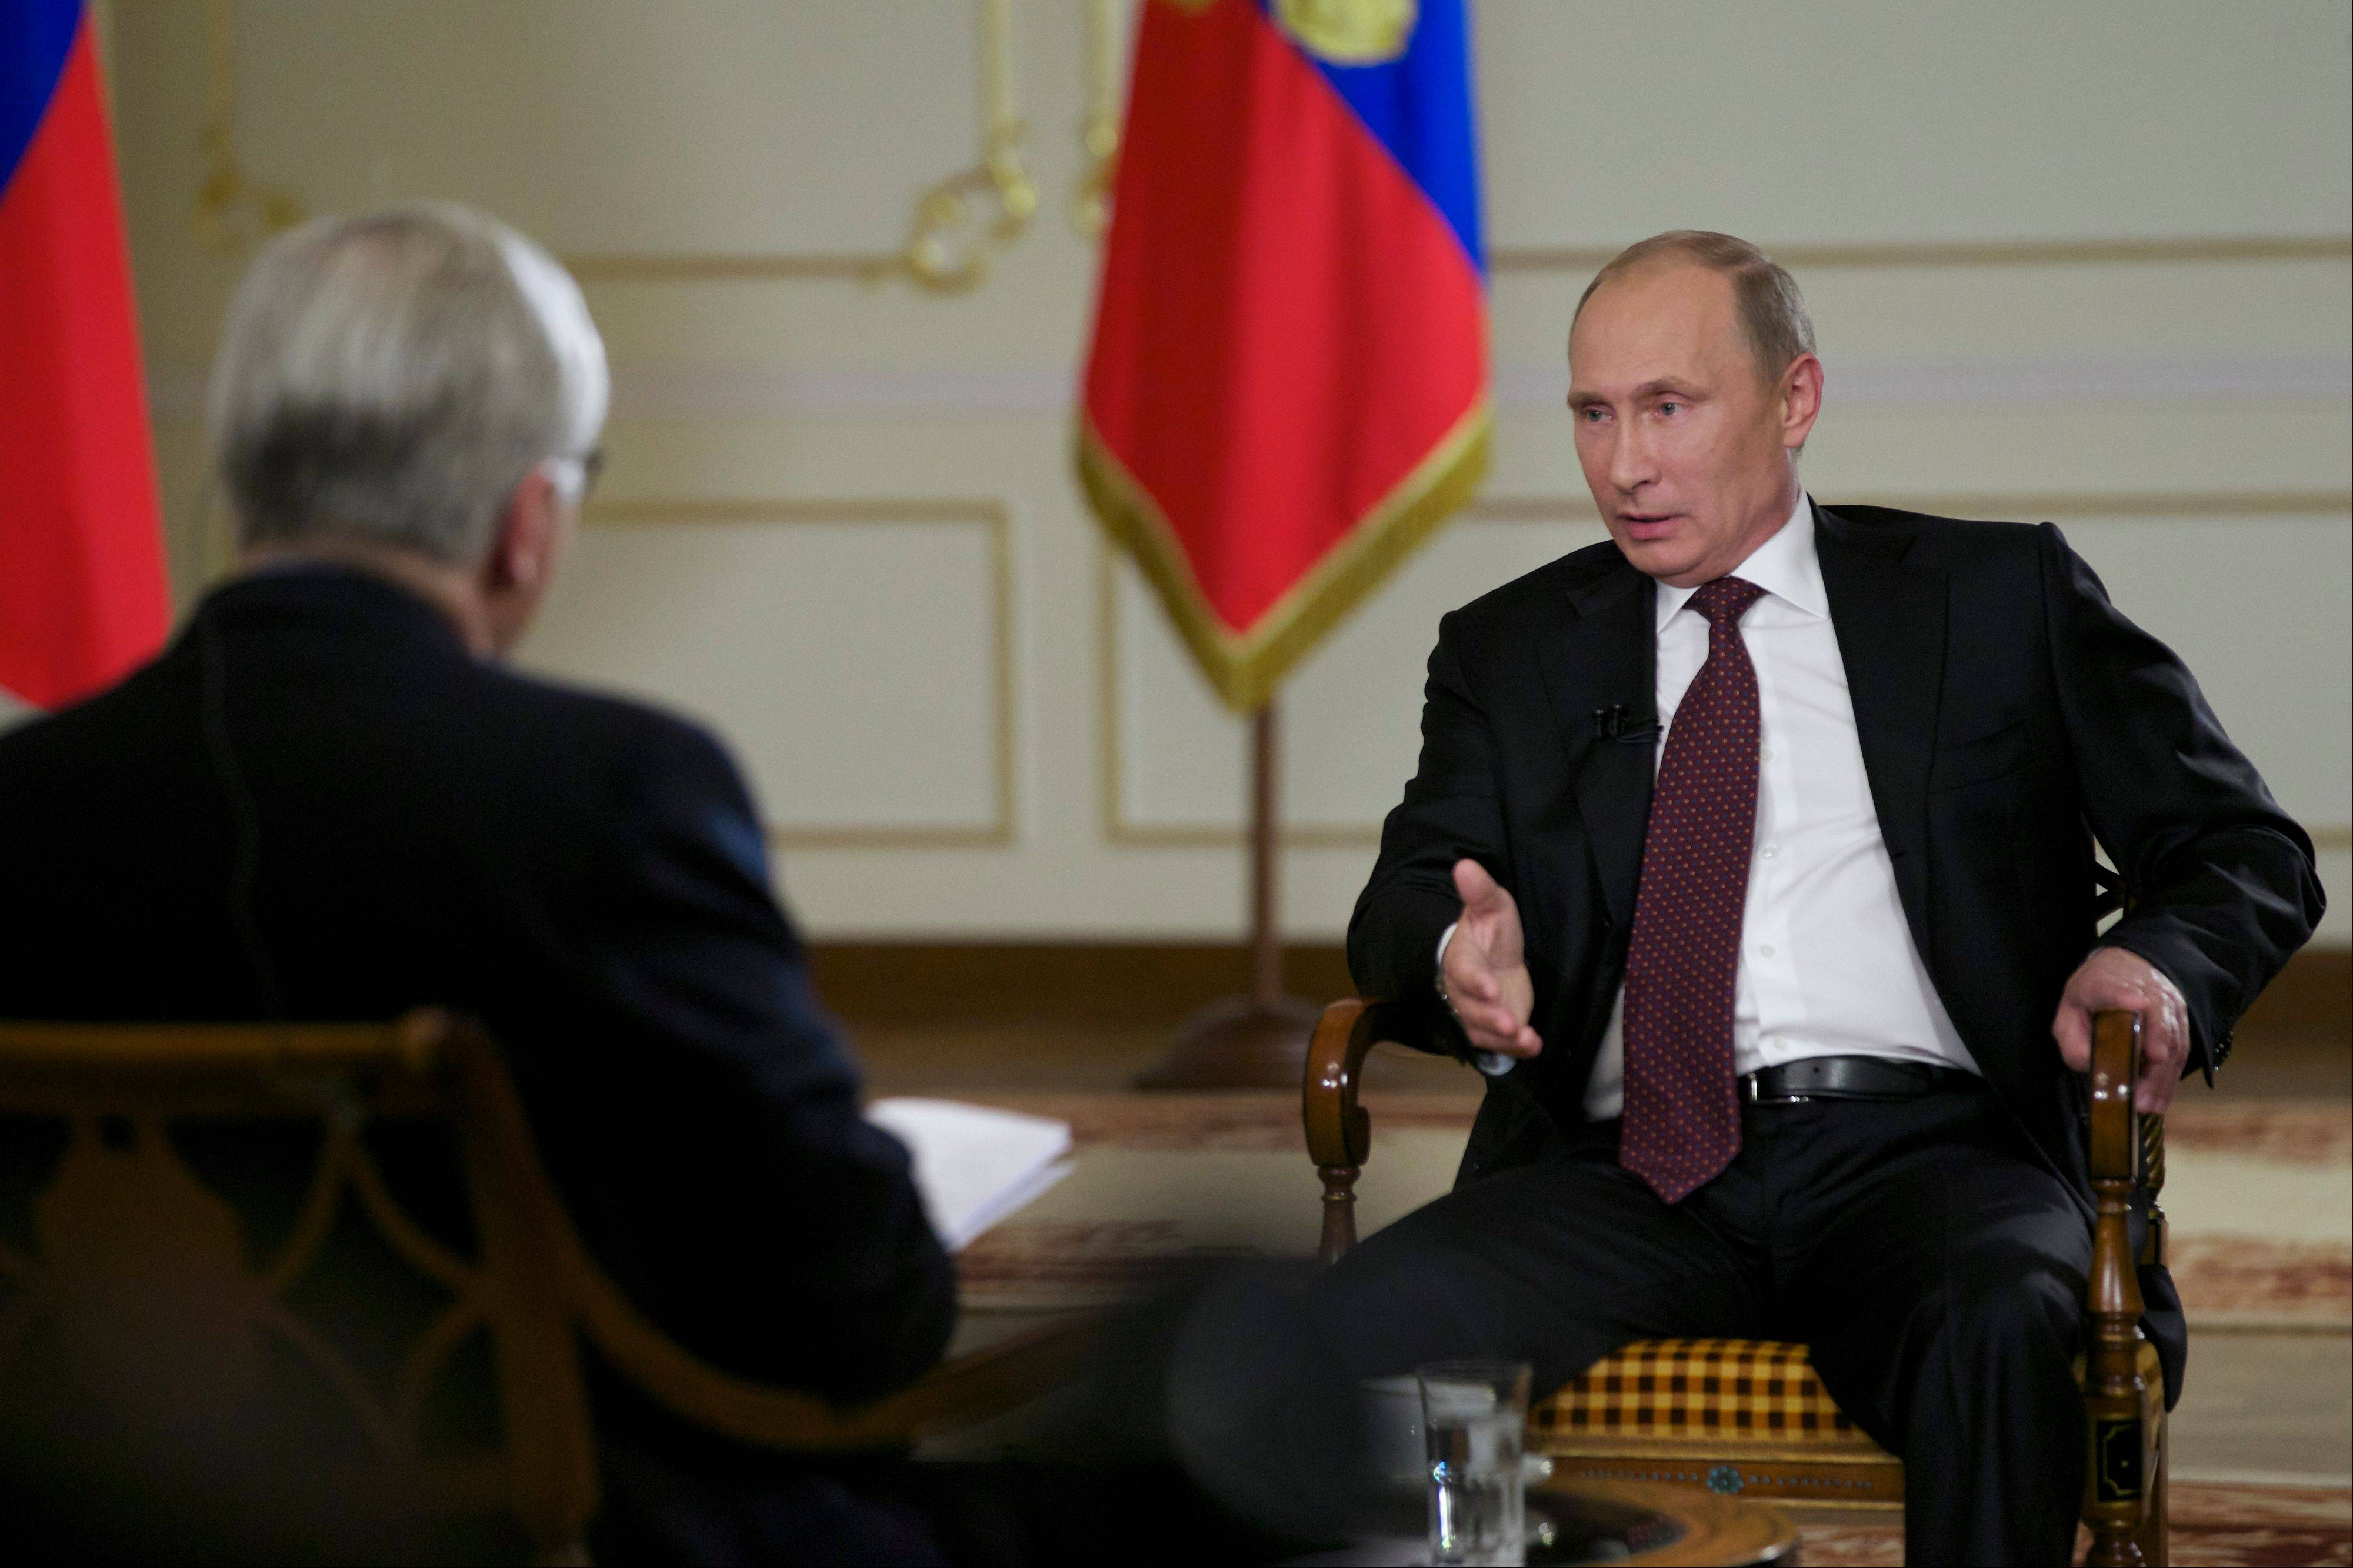 Russian President Vladimir Putin, right, speaks to John Daniszewski, the Associated Press's Senior Managing Editor for International News, during an AP interview at Putin's Novo-Ogaryovo residence outside Moscow, Russia, Tuesday, Sept. 3, 2013. Putin sought to downplay the current chill in the U.S.-Russian relations and said that the two countries need to cooperate on a range of issues in the interests of global stability.